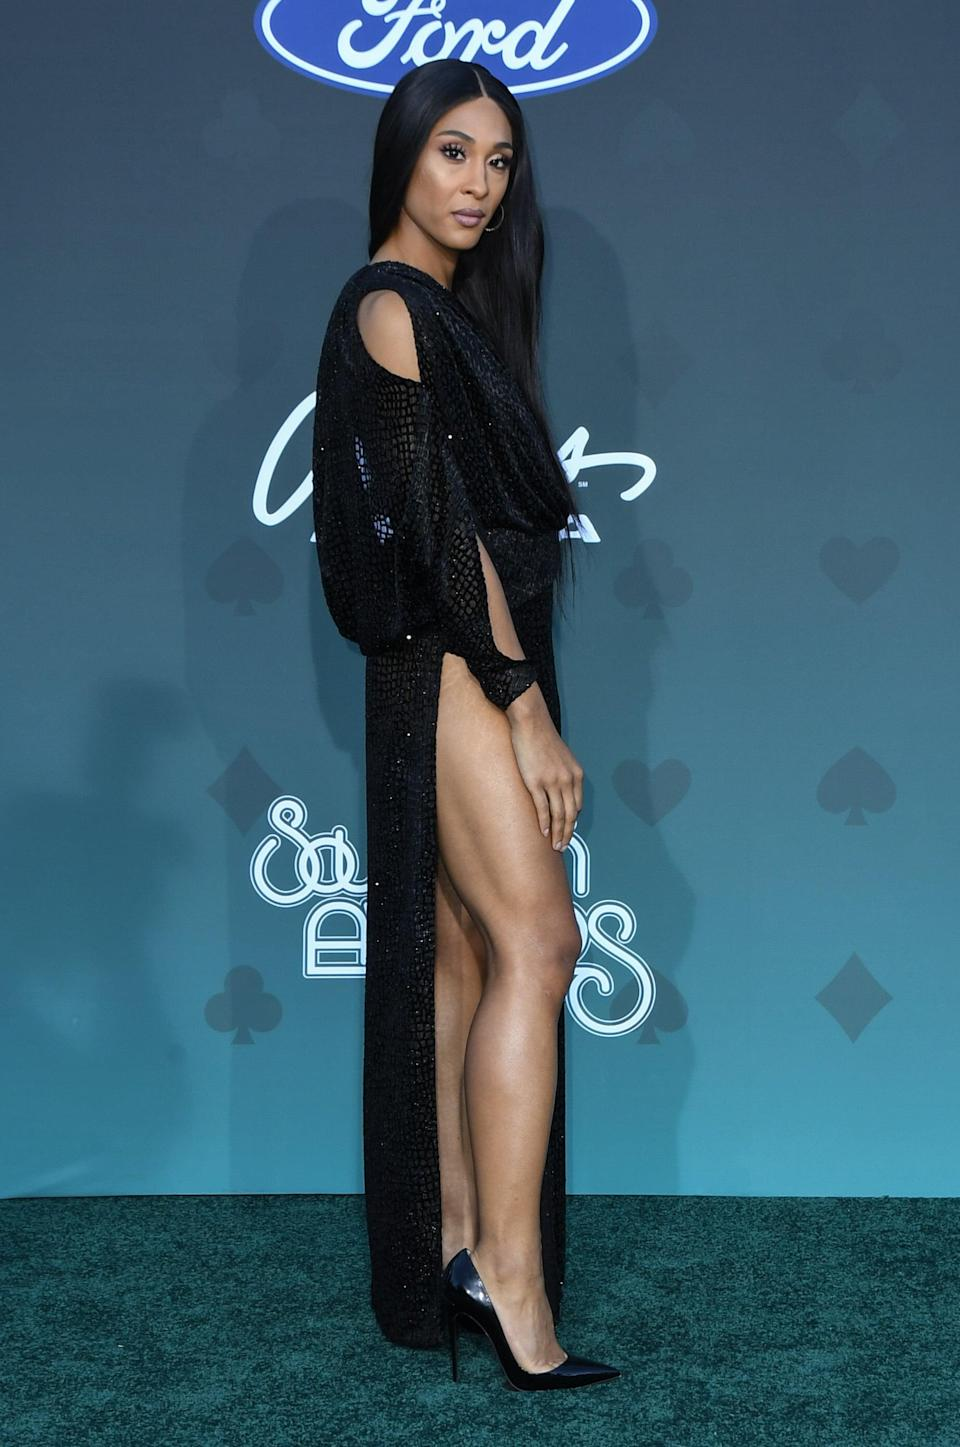 <p>Mj played up her leggy look with Christian Louboutin heels at the 2019 Soul Train Awards in Las Vegas.</p>